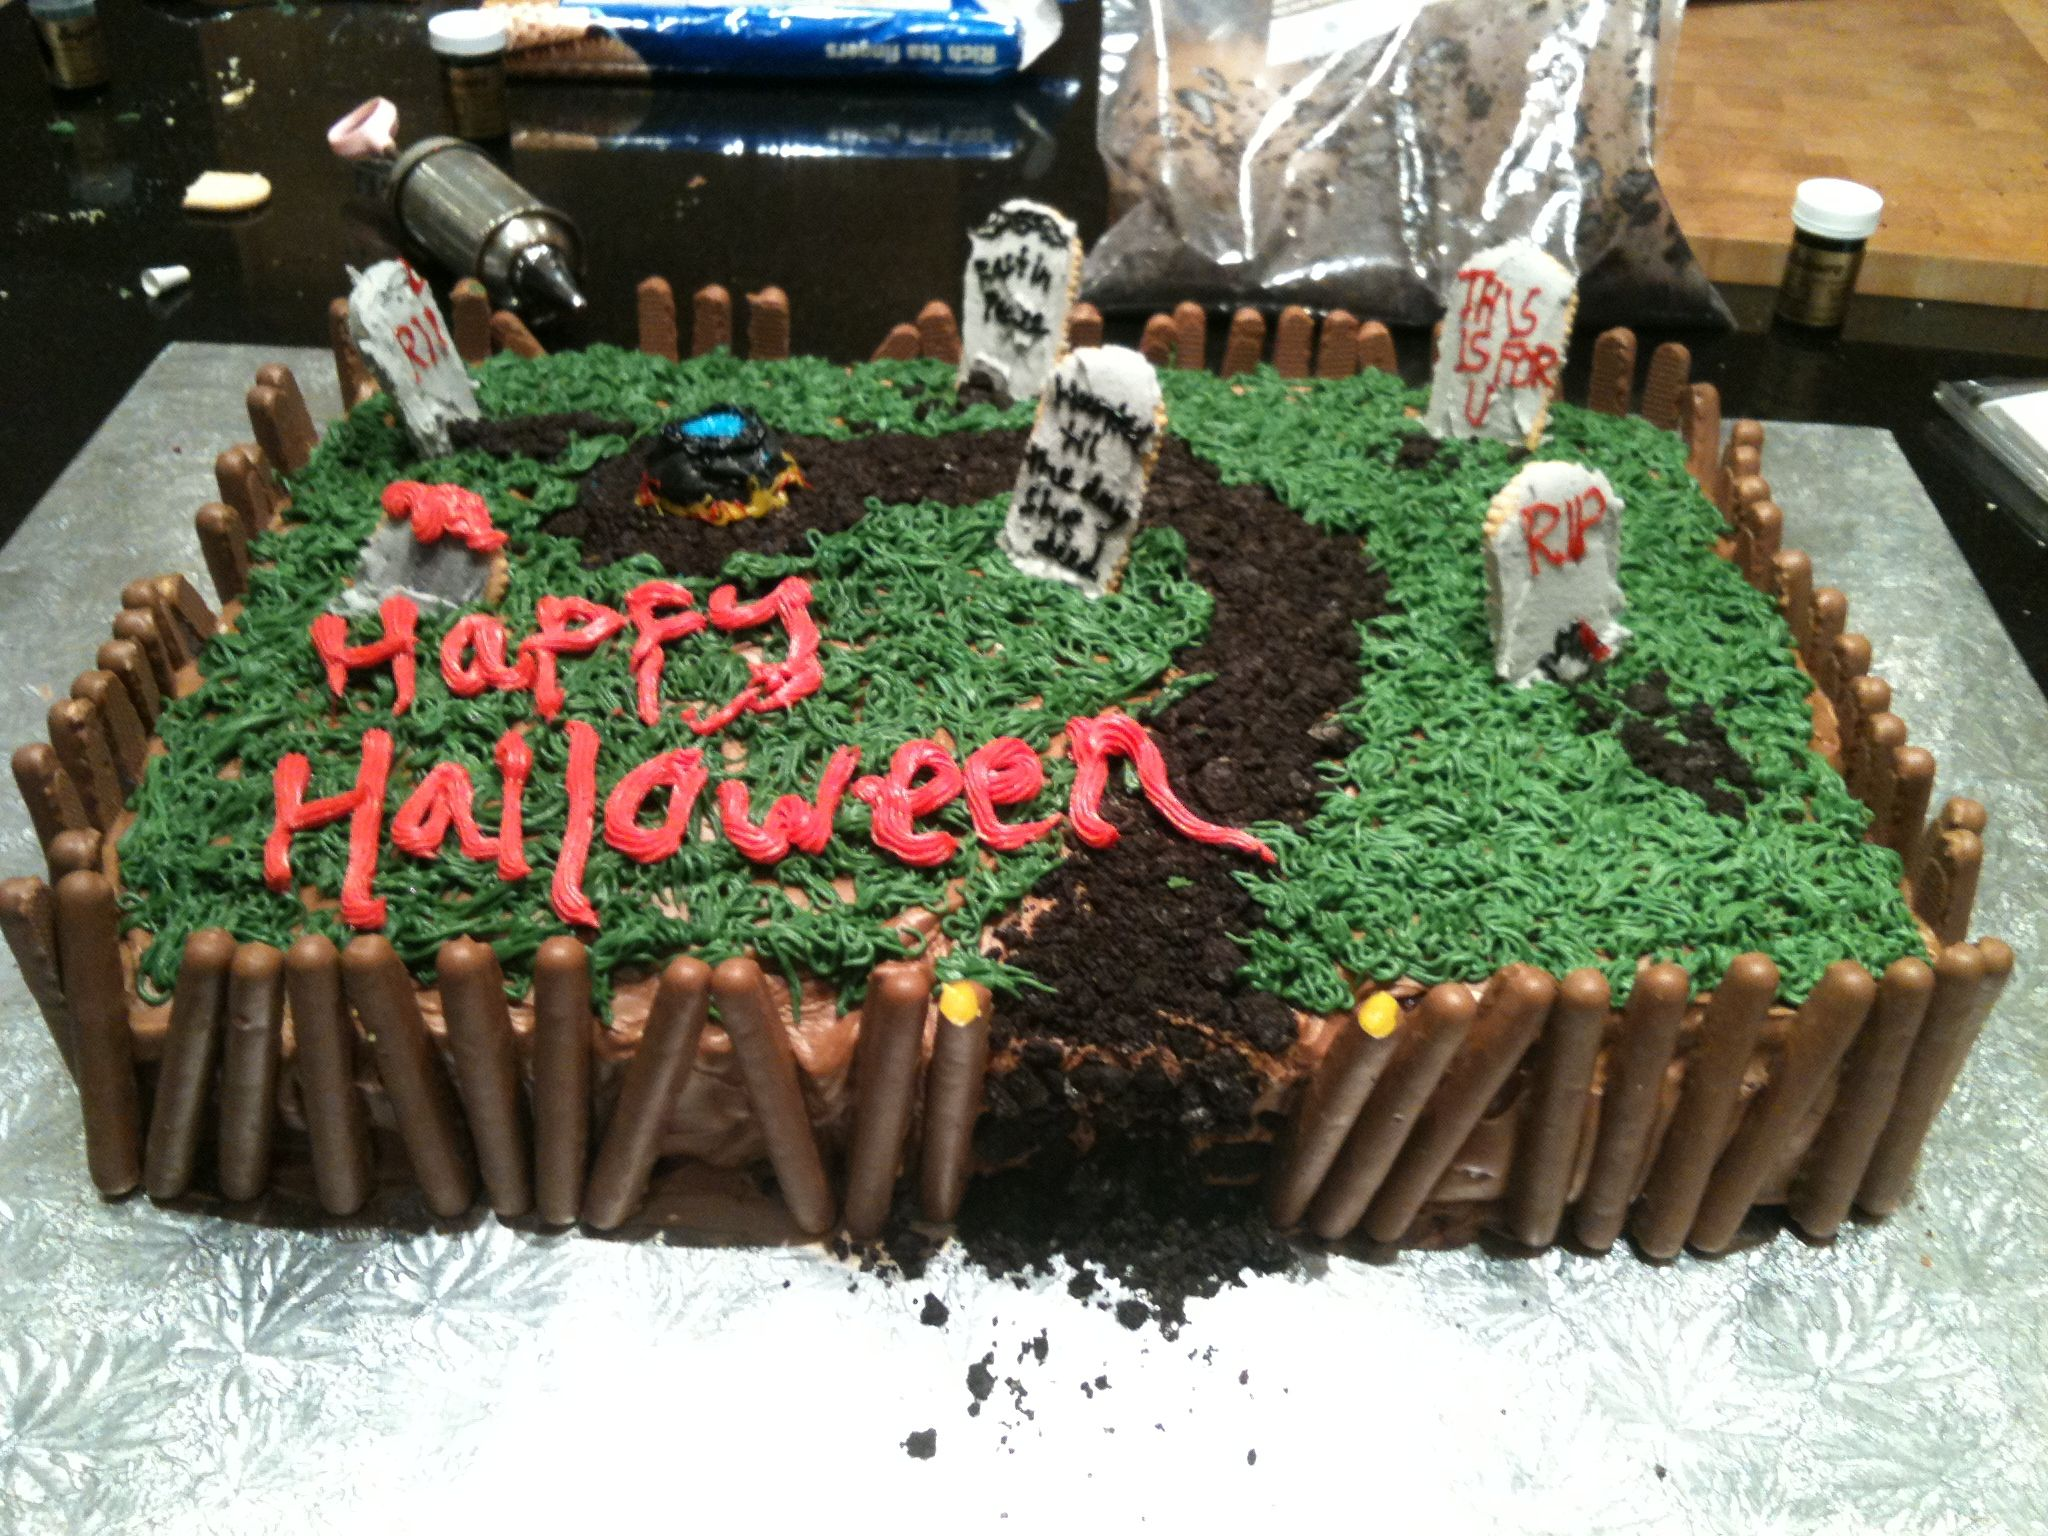 Halloween graveyard cake I made for a party. The dirt is ...